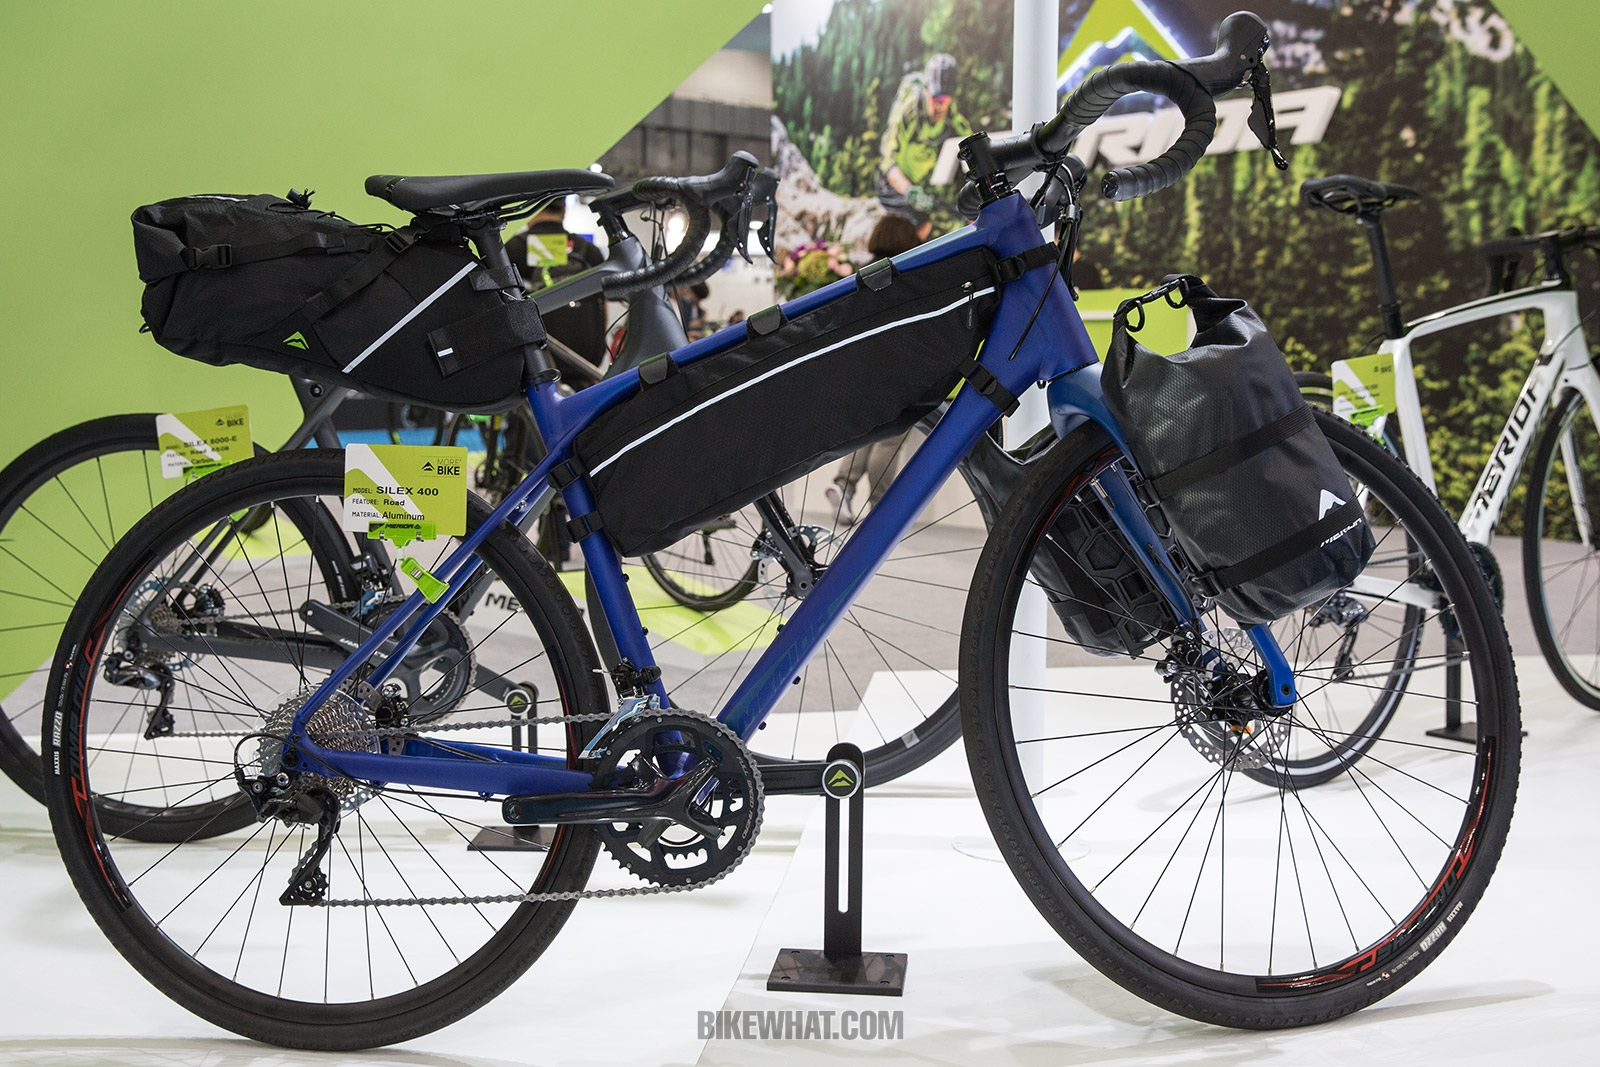 Feature_TaipeiCycle_2019_Merida_Silex_400.jpg